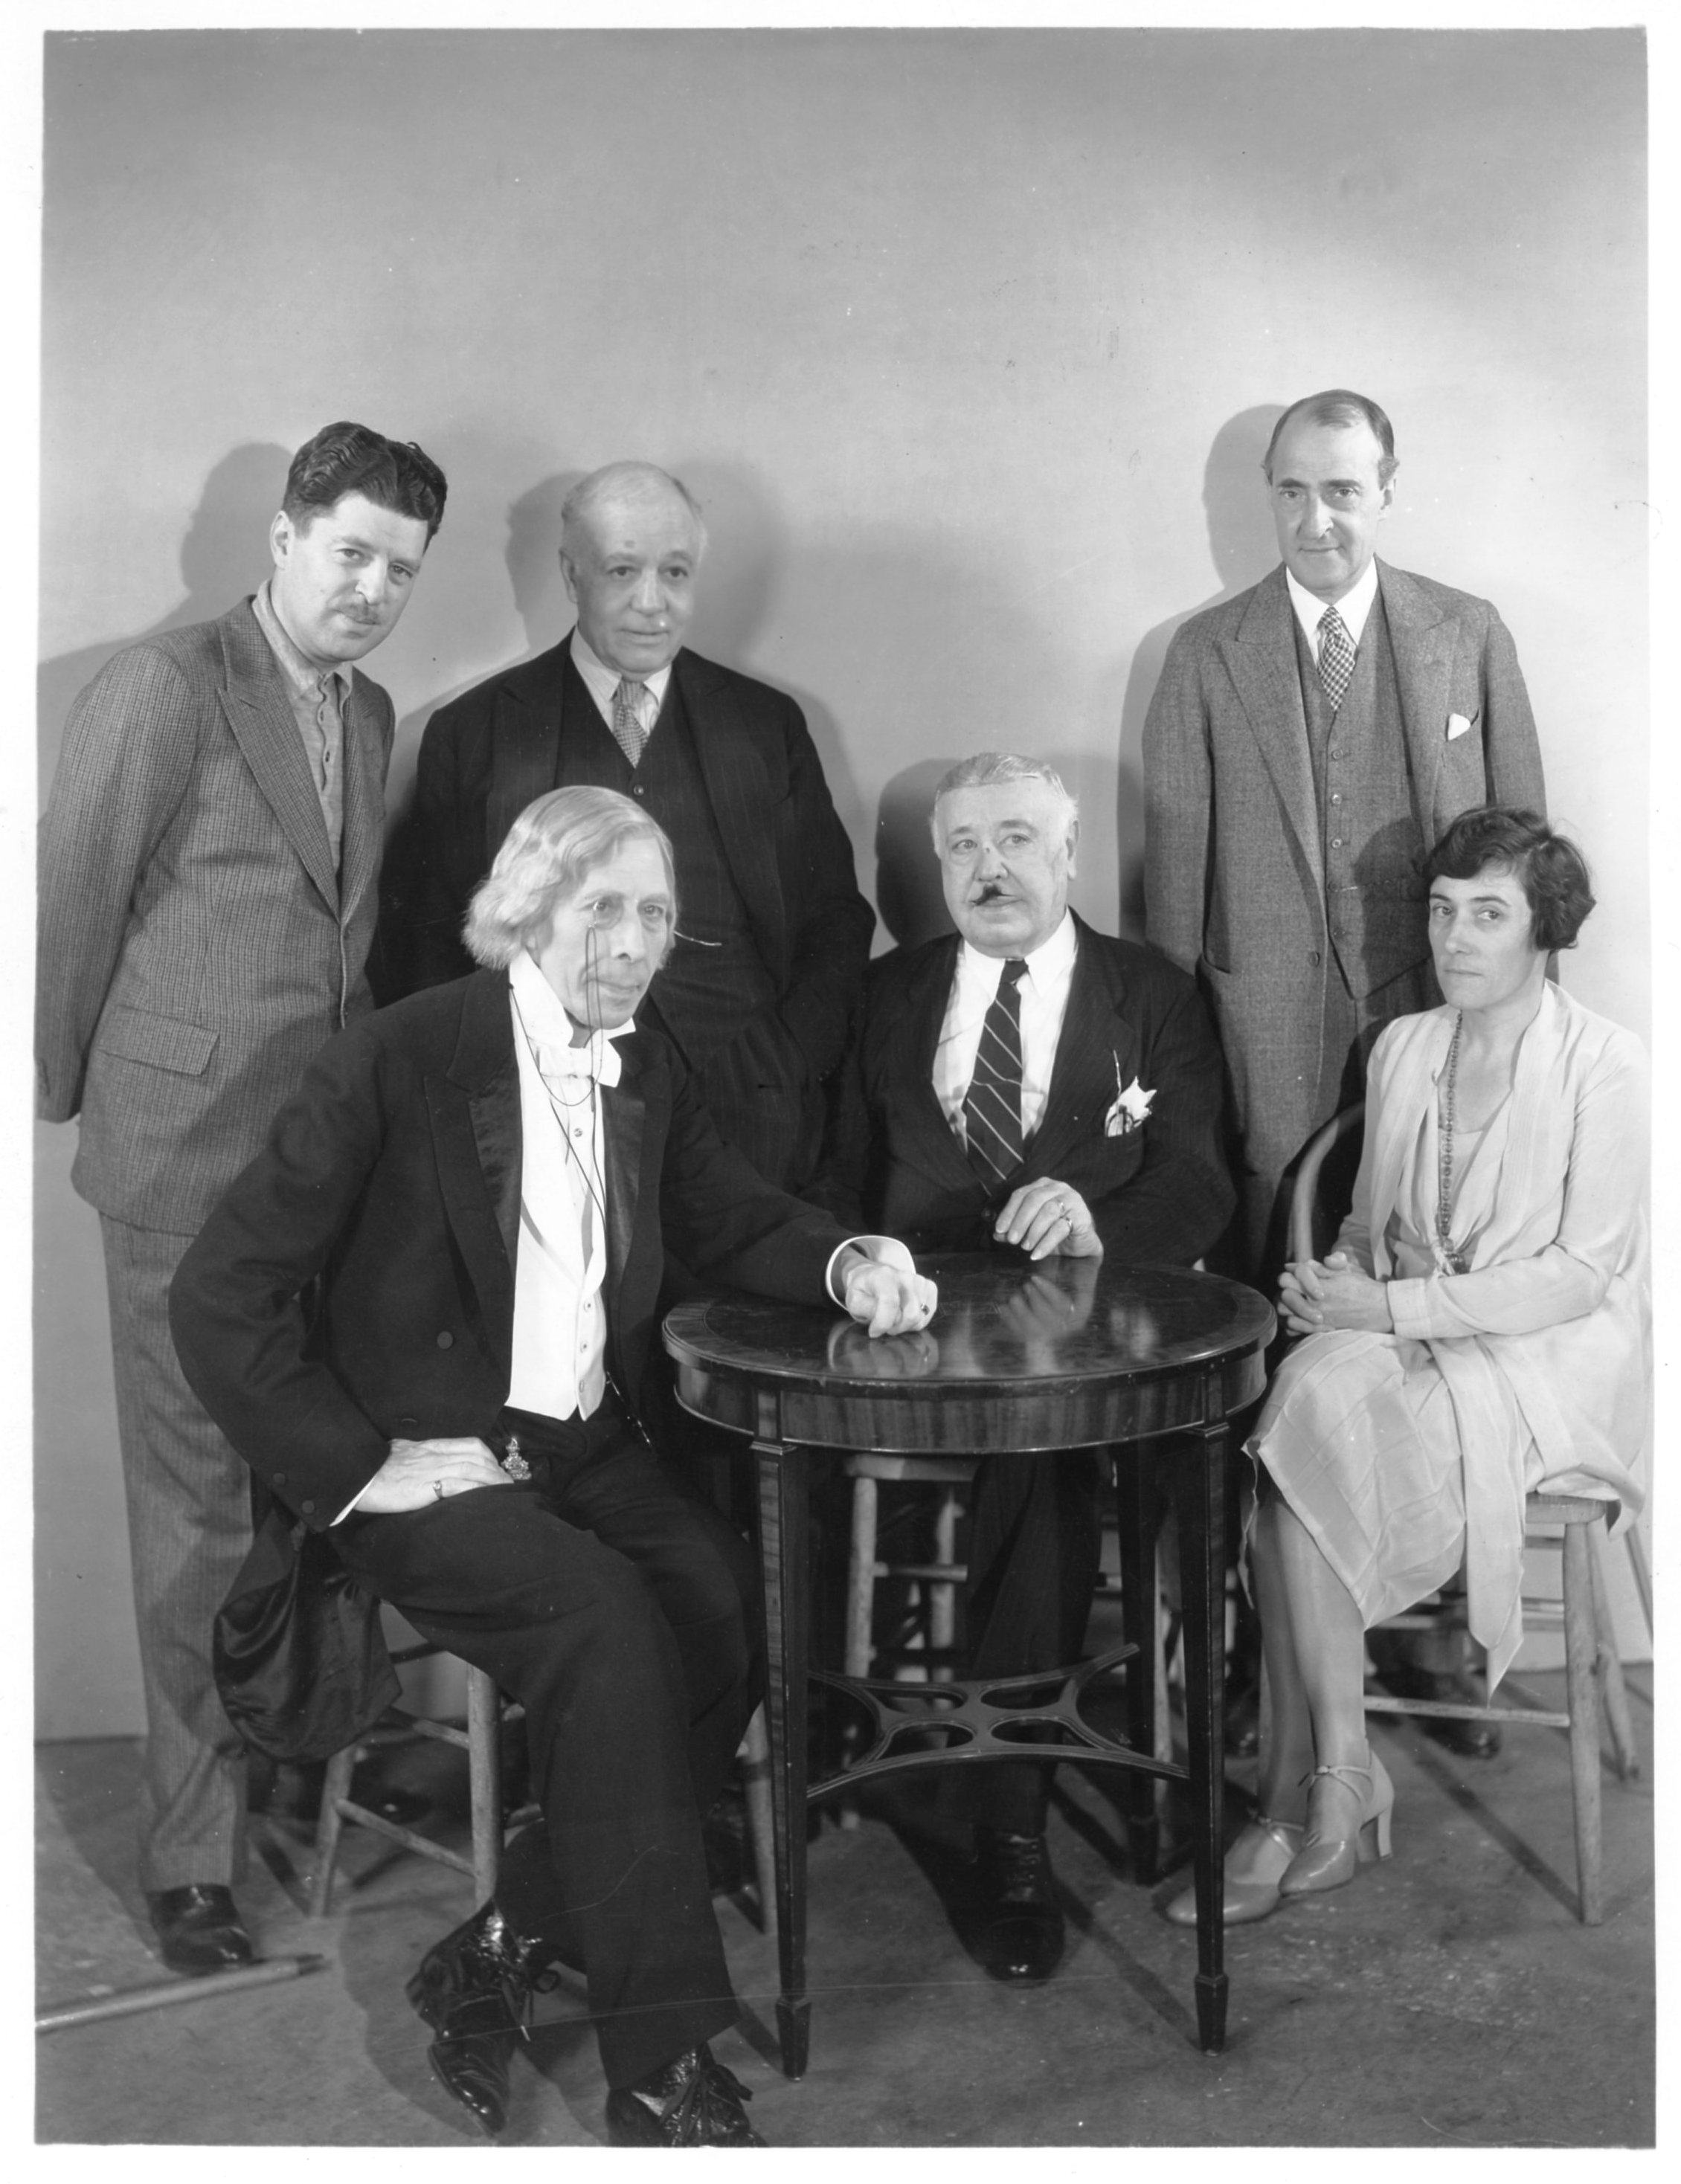 George Arliss, Winthrop Ames, Alfred E. Green, Maude T. Howell, Wilton Lackaye, and Otis Skinner in Old English (1930)